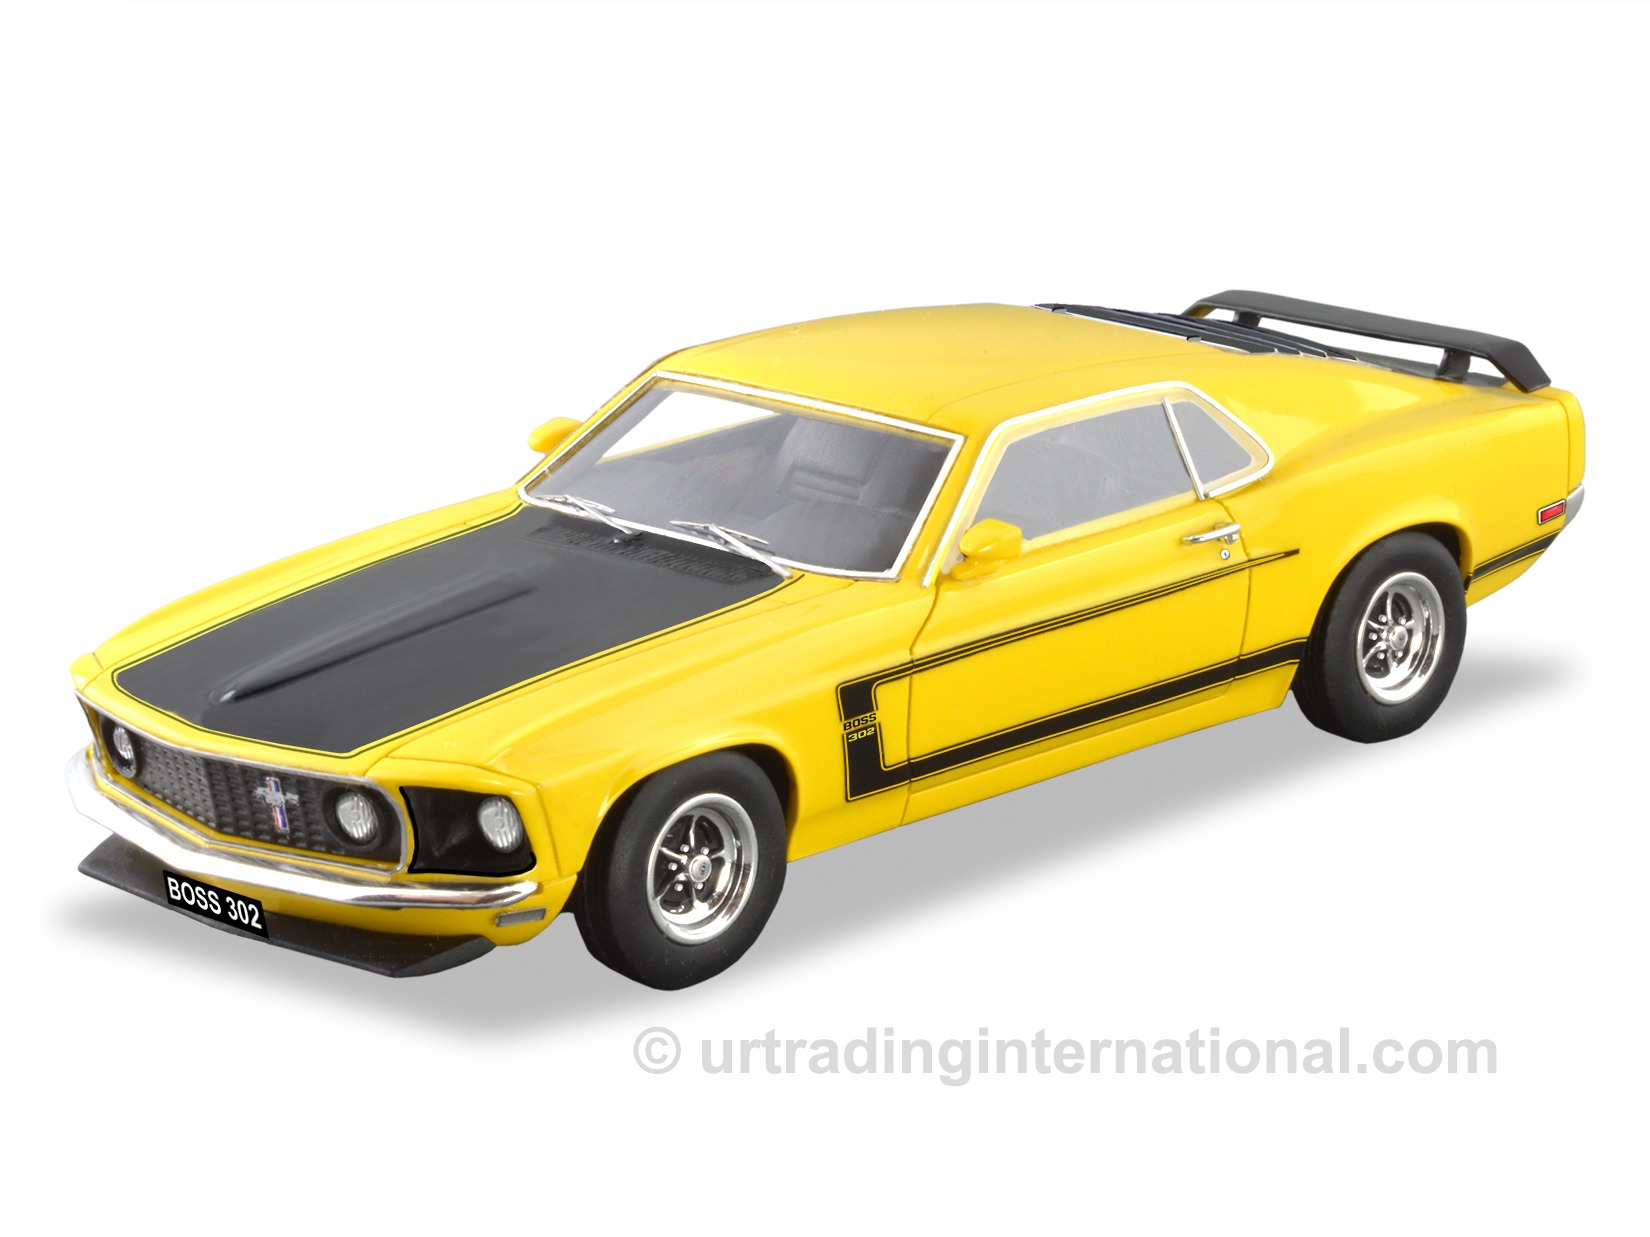 1969 Ford Mustang Boss 302 (LHD) – Yellow.